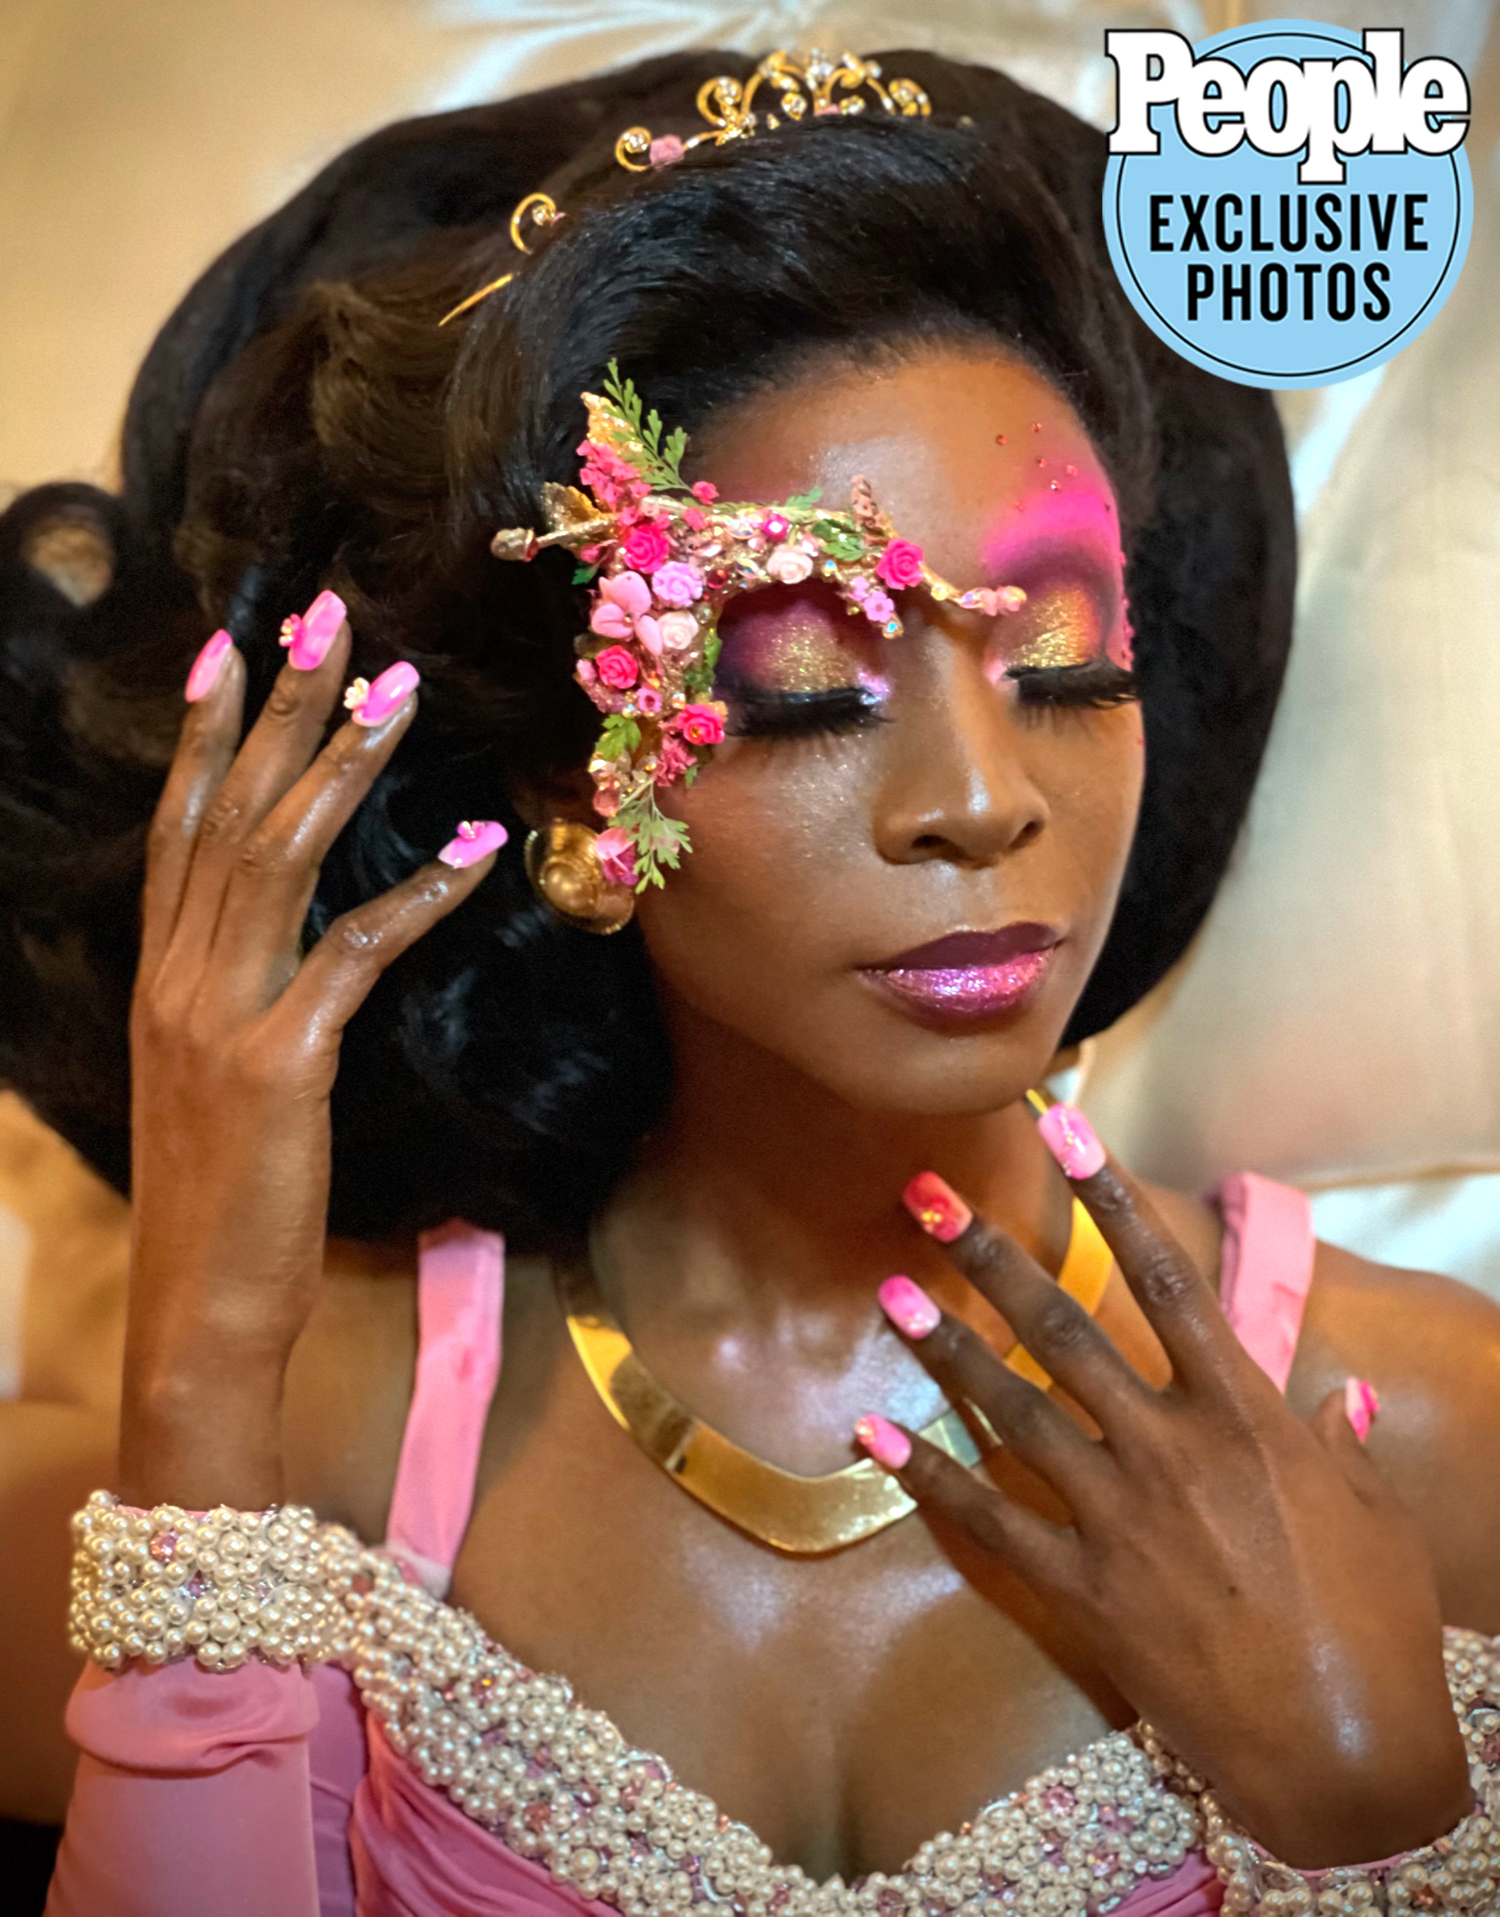 POSE -- Season 3 -- BTS -- Pictured: Angelica Ross as Candy